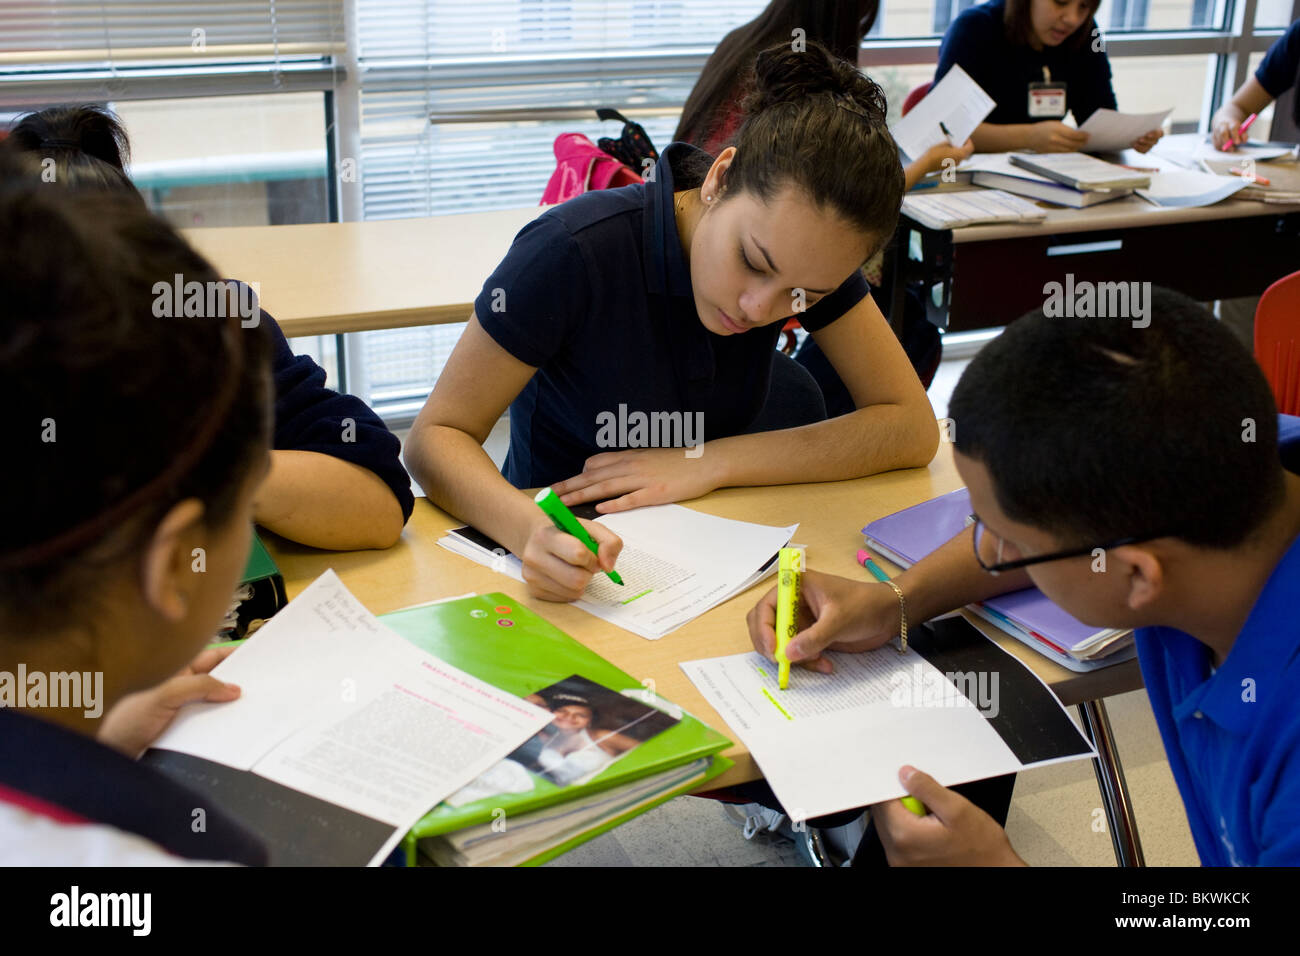 High School Students Study Together At Charter School Peak Stock